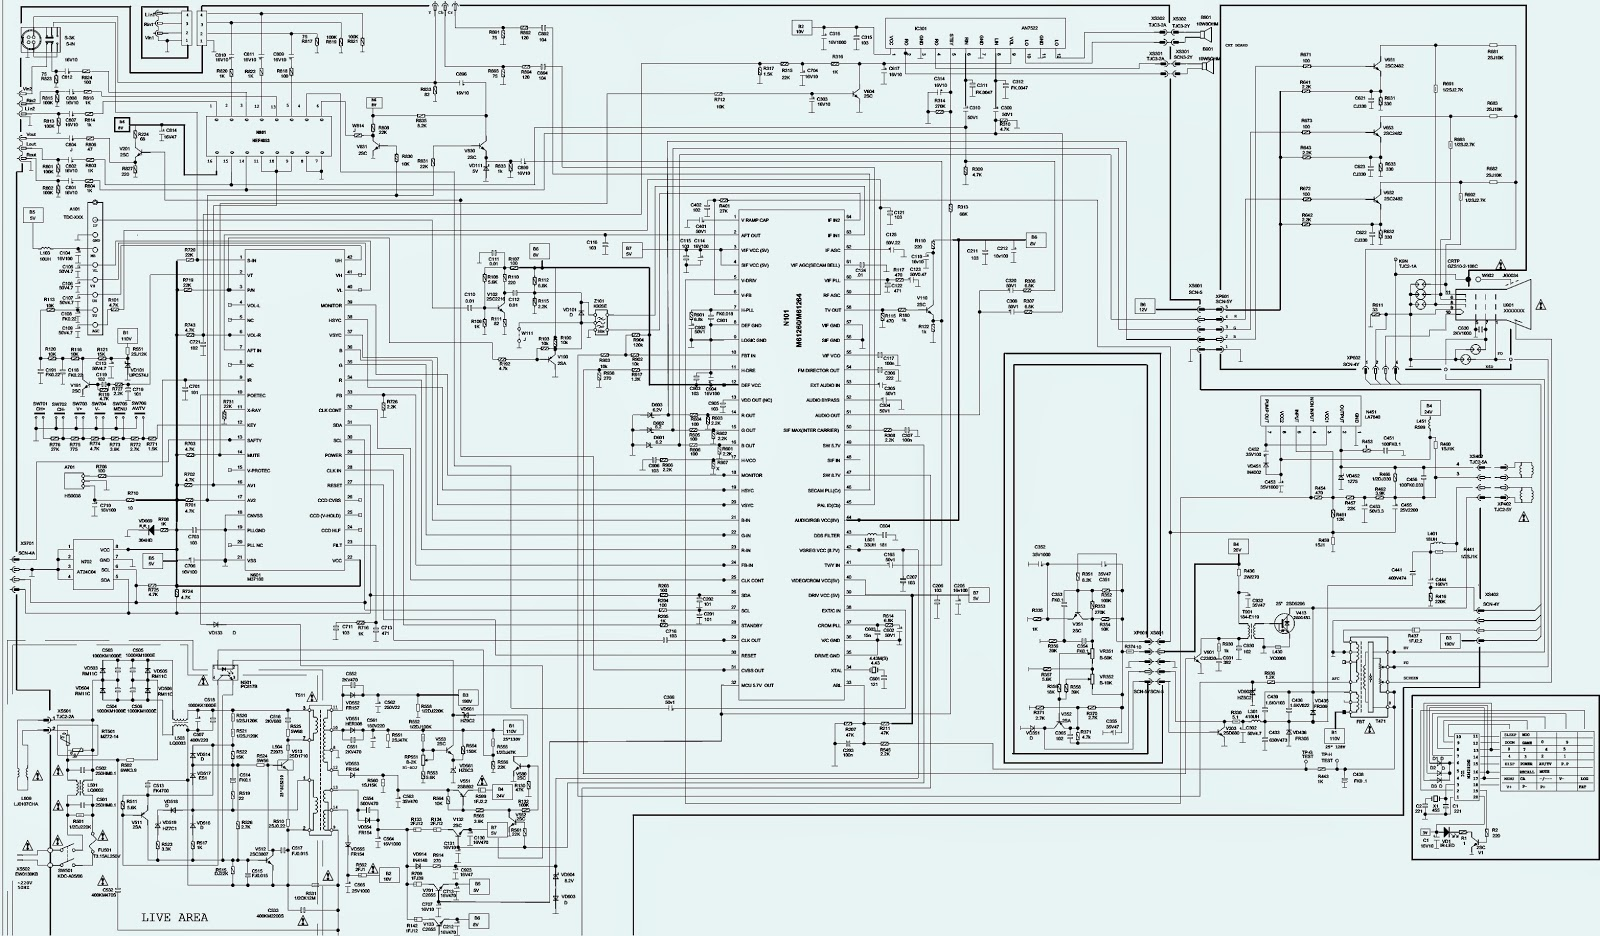 LG.bmp ics wiring diagram nortel compact ics \u2022 205 ufc co norstar compact ics wiring diagram at gsmx.co